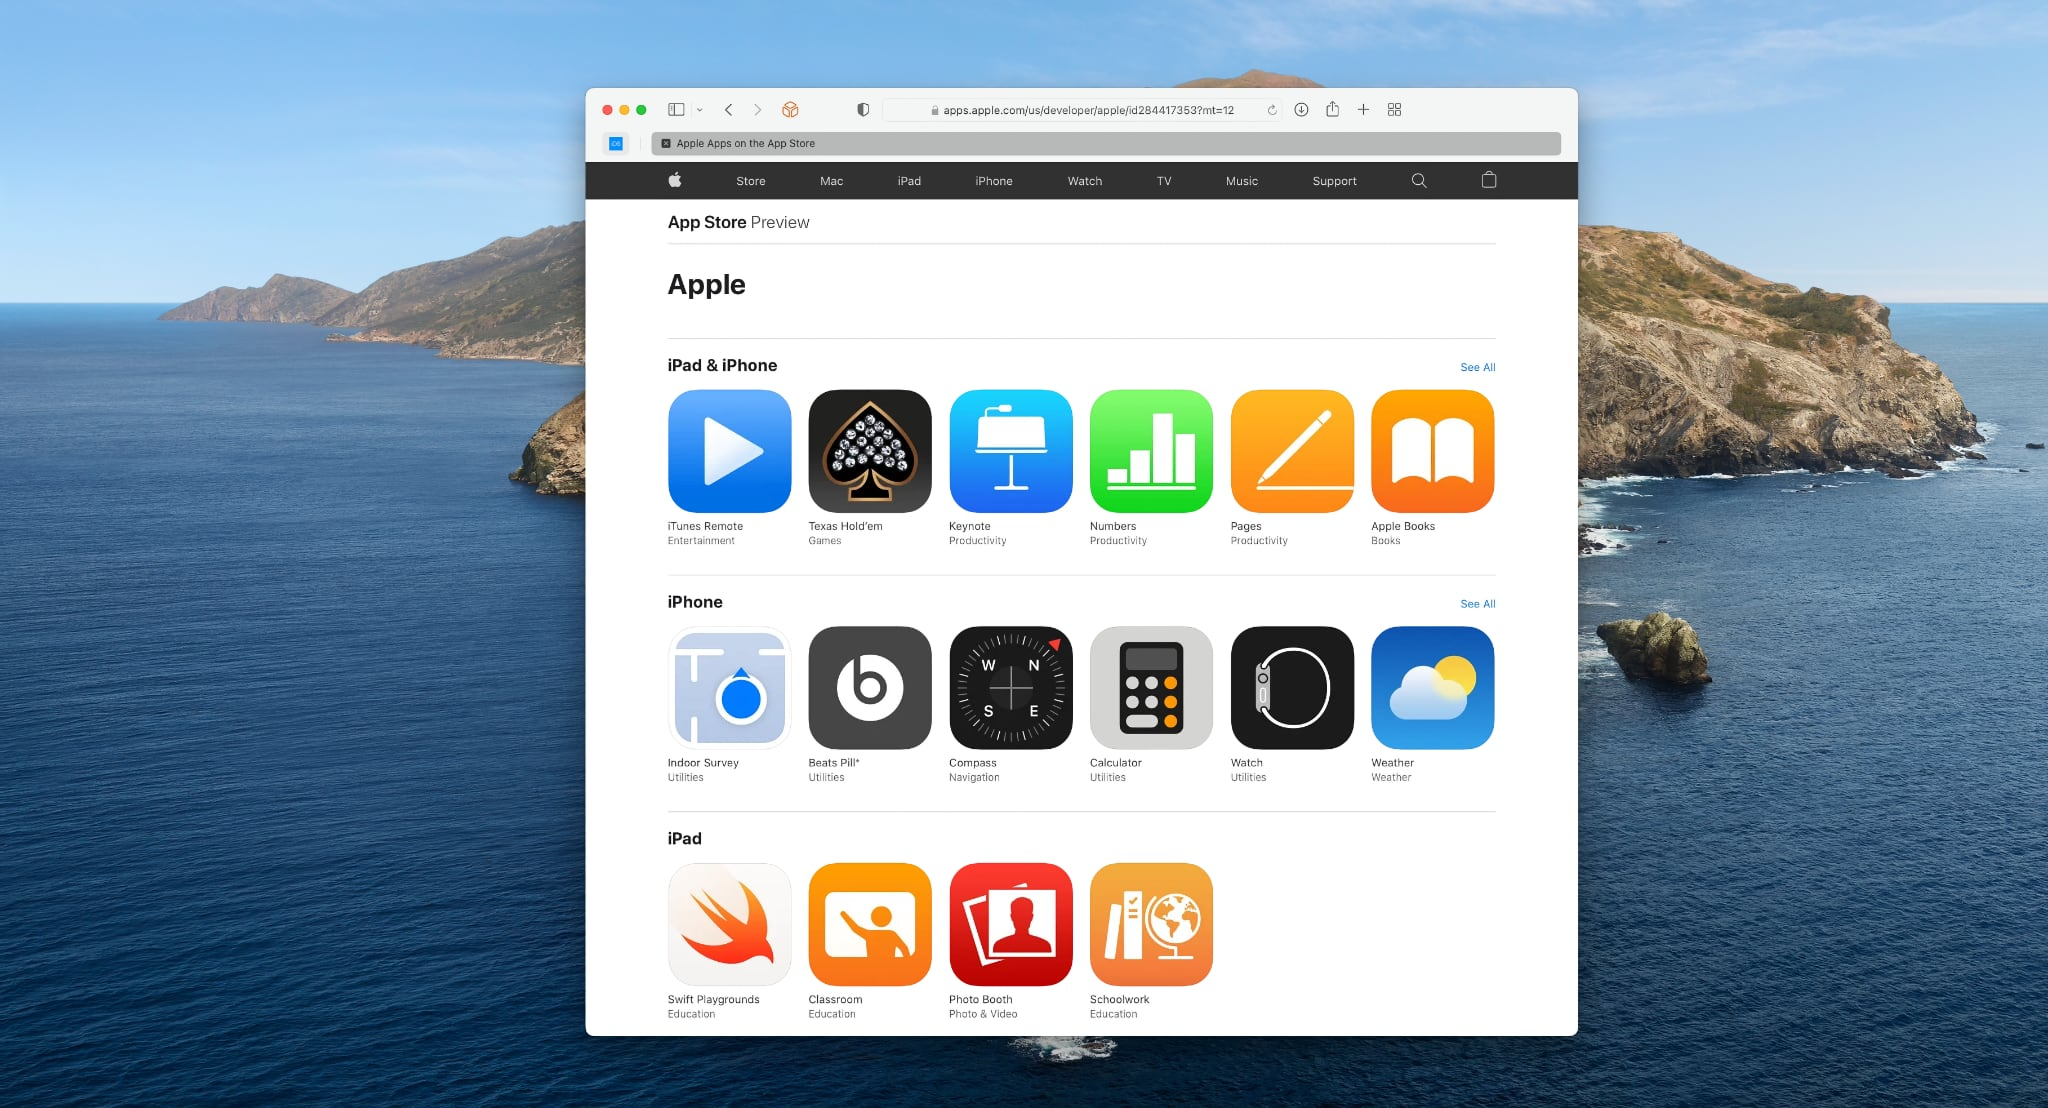 A Safari screenshot showing an App Store web preview of first-party apps for iPhone and iPad